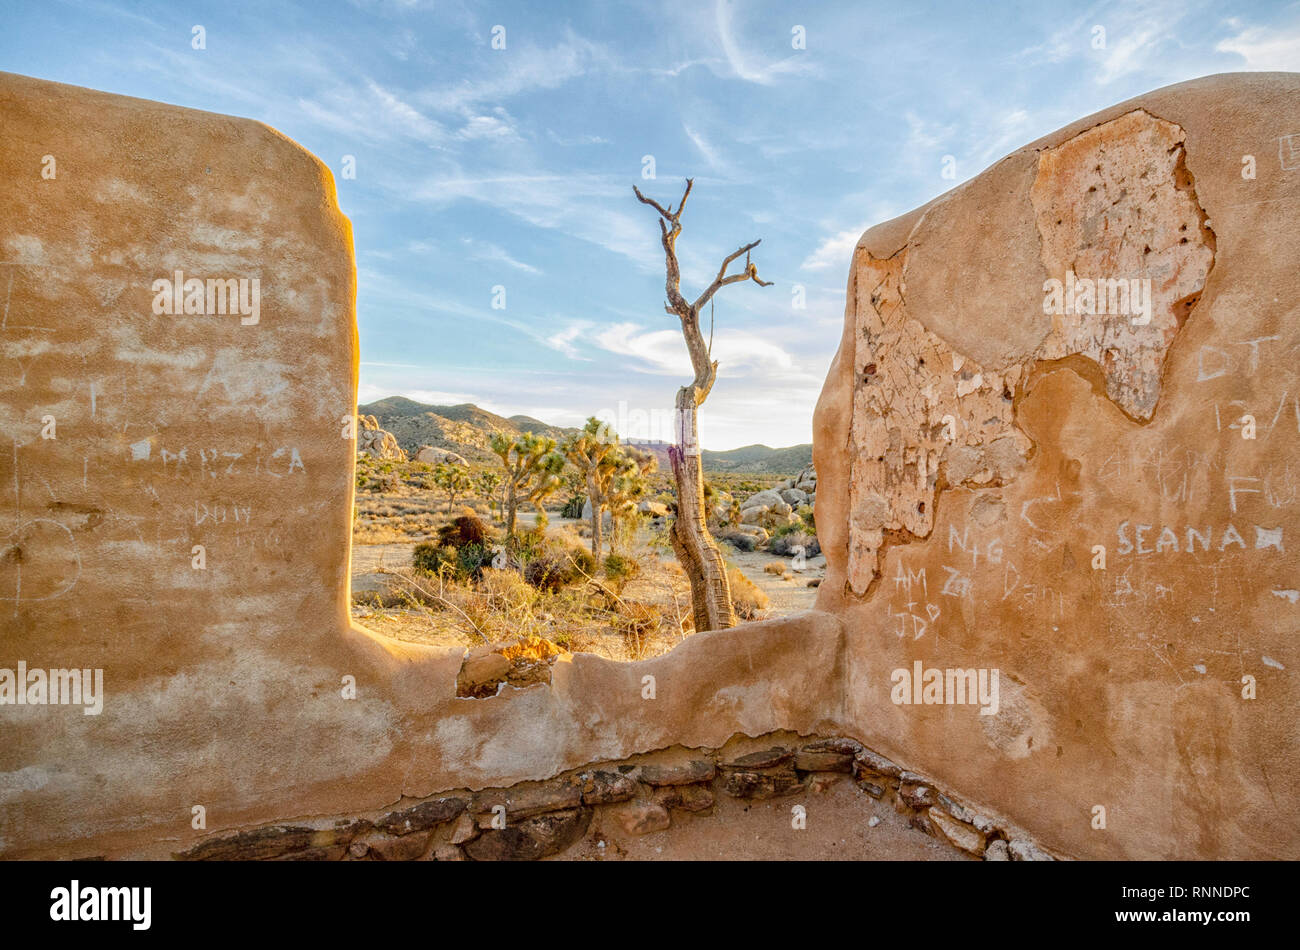 The Ryan Ranch house is an adobe structure built in 1896 in what is now Joshua Tree National Park, CA. Stock Photo